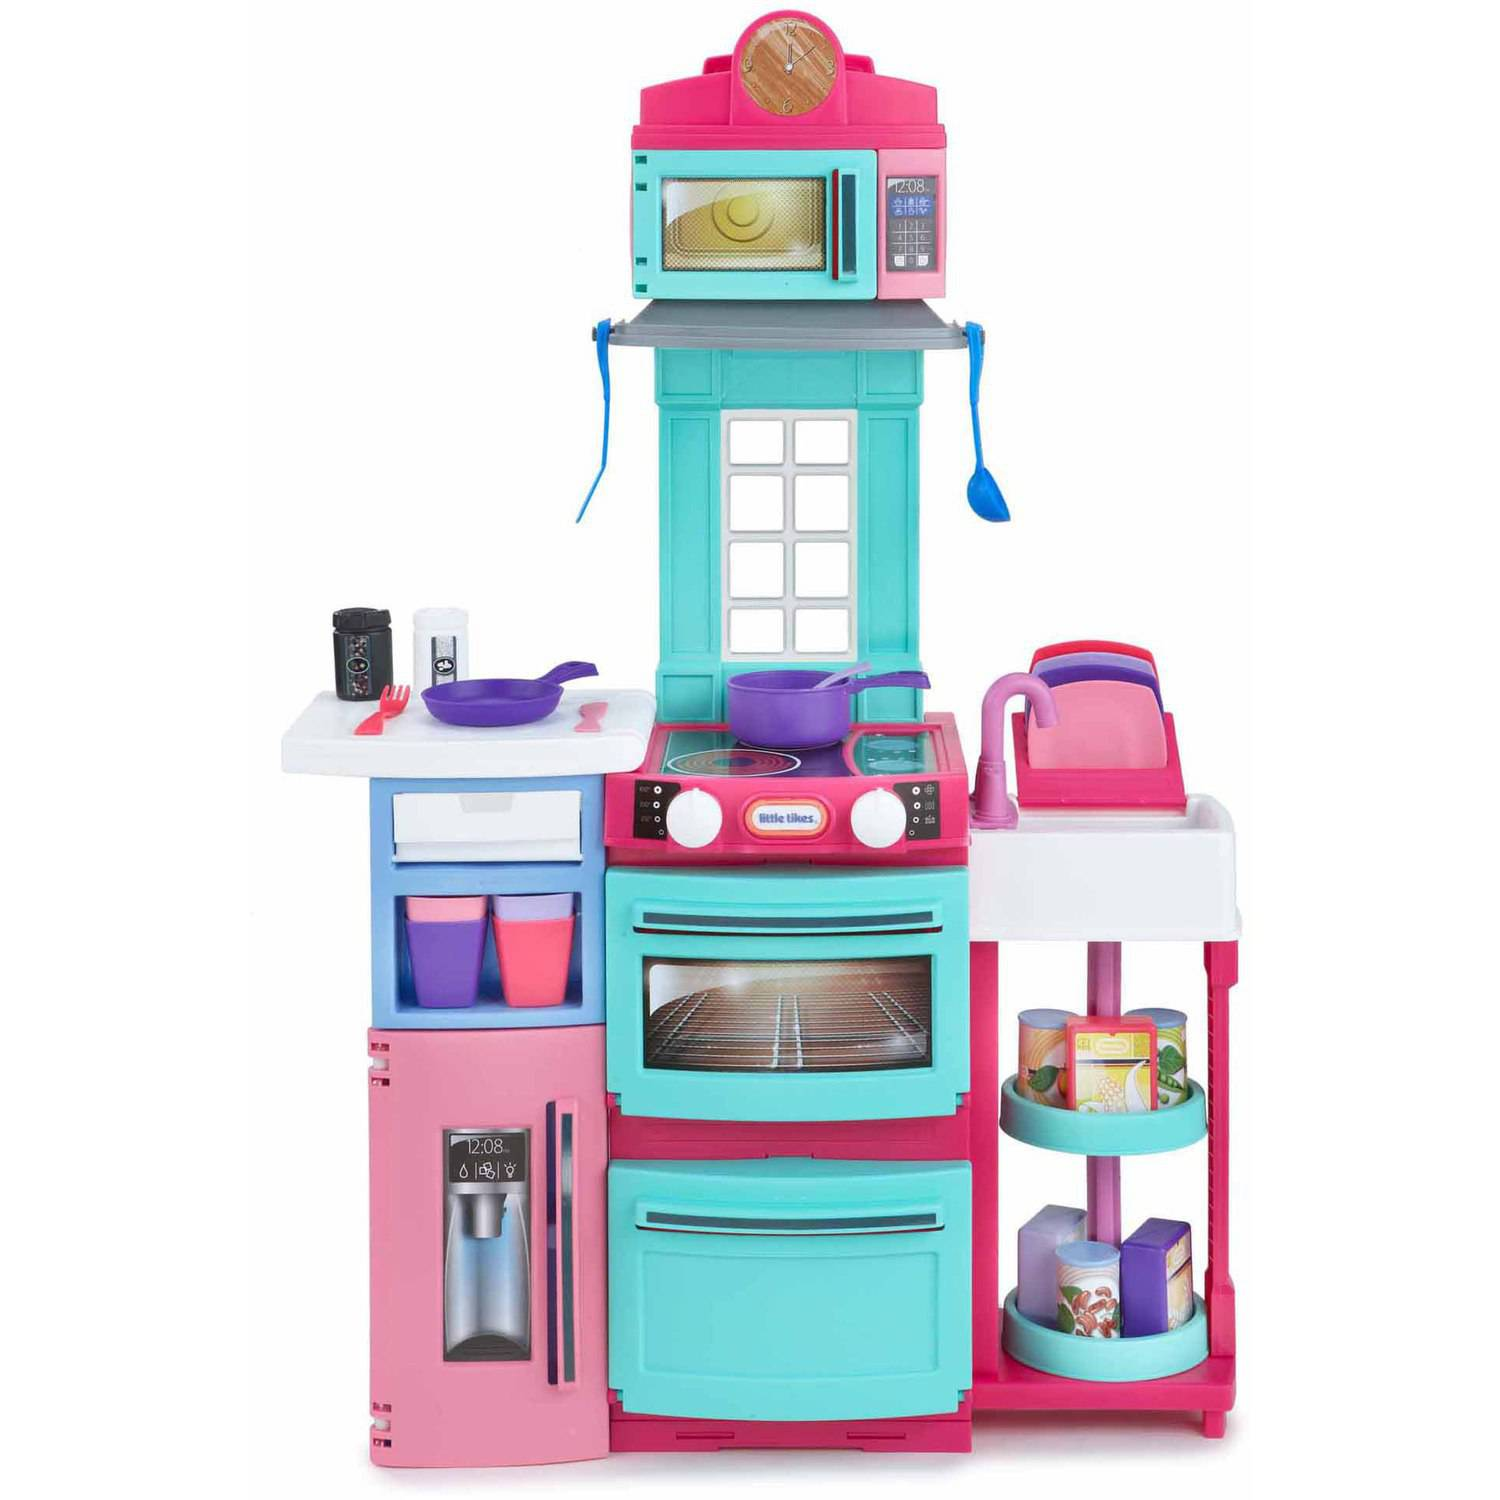 Little Tikes Play Kitchen With Grill little tikes cook 'n store kitchen, pink - walmart